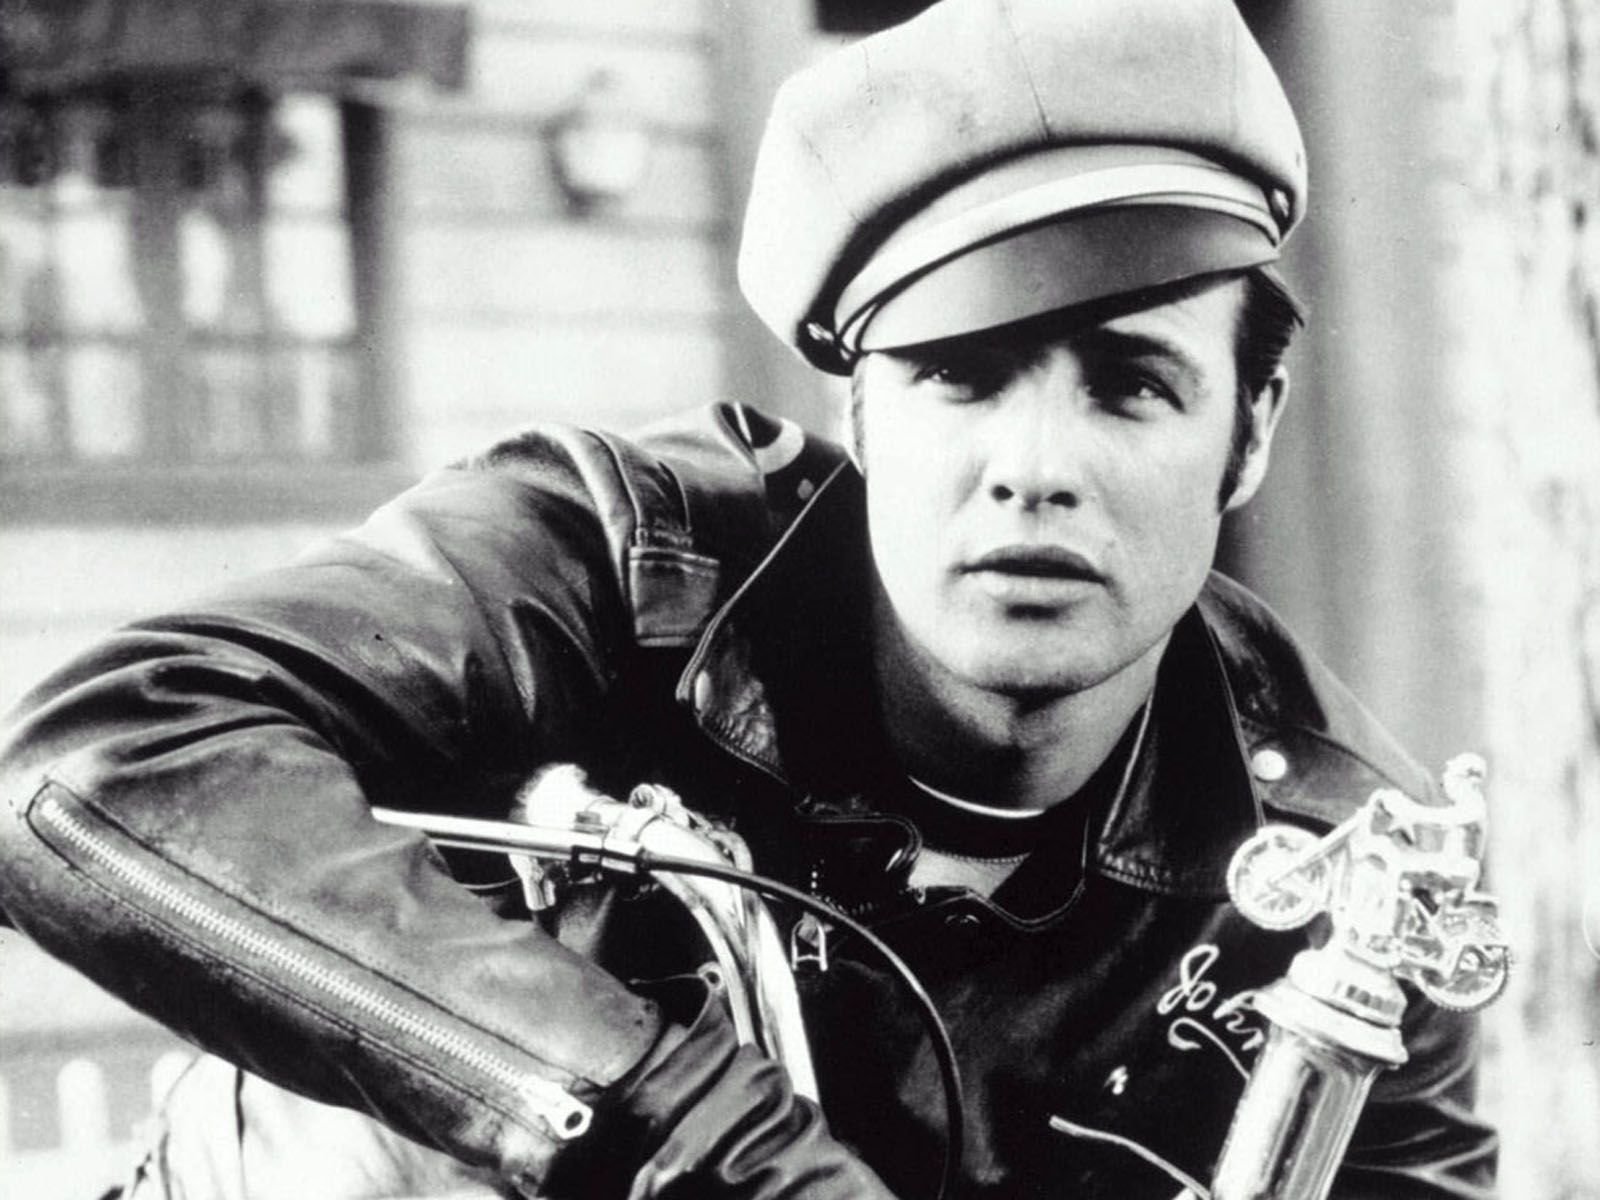 The original bad boy, Brando played the part well, dressing in American leather motorcycle jackets and matching MC boots, selvage denim and the perfectly ...